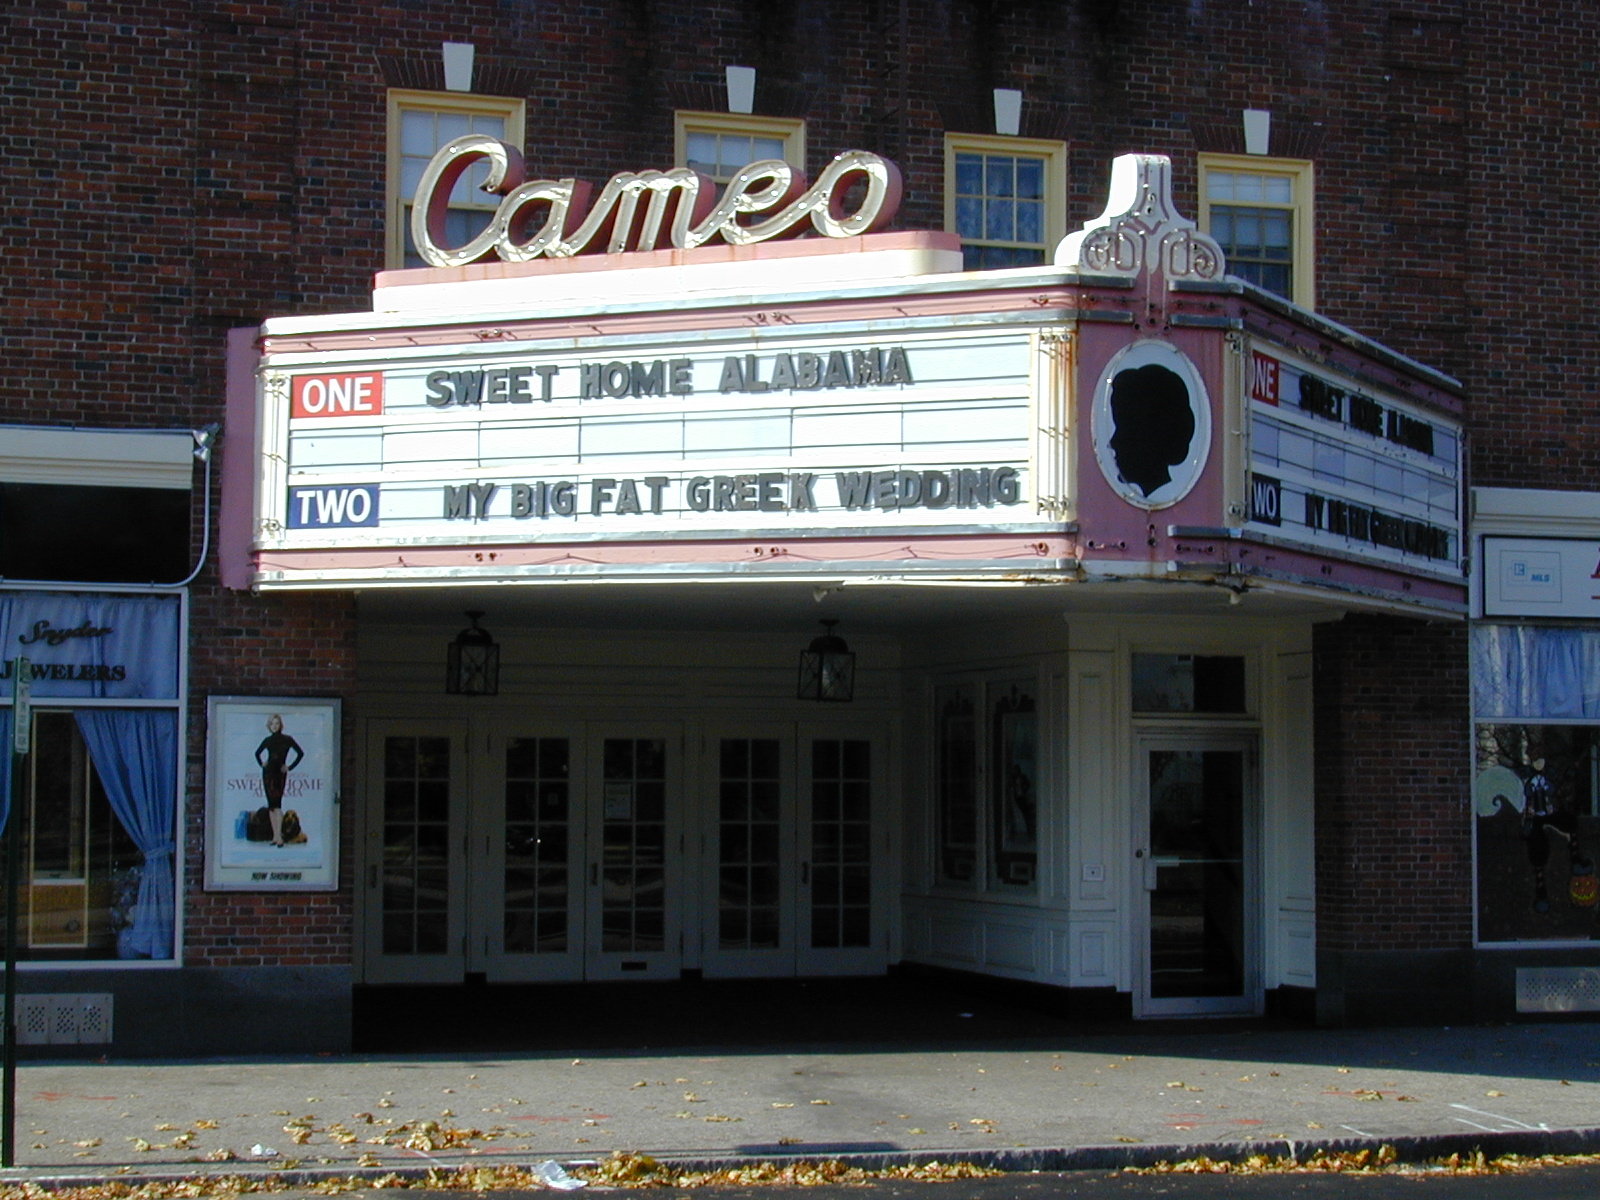 The Cameo Theatre is located in Weymouth, Mass.